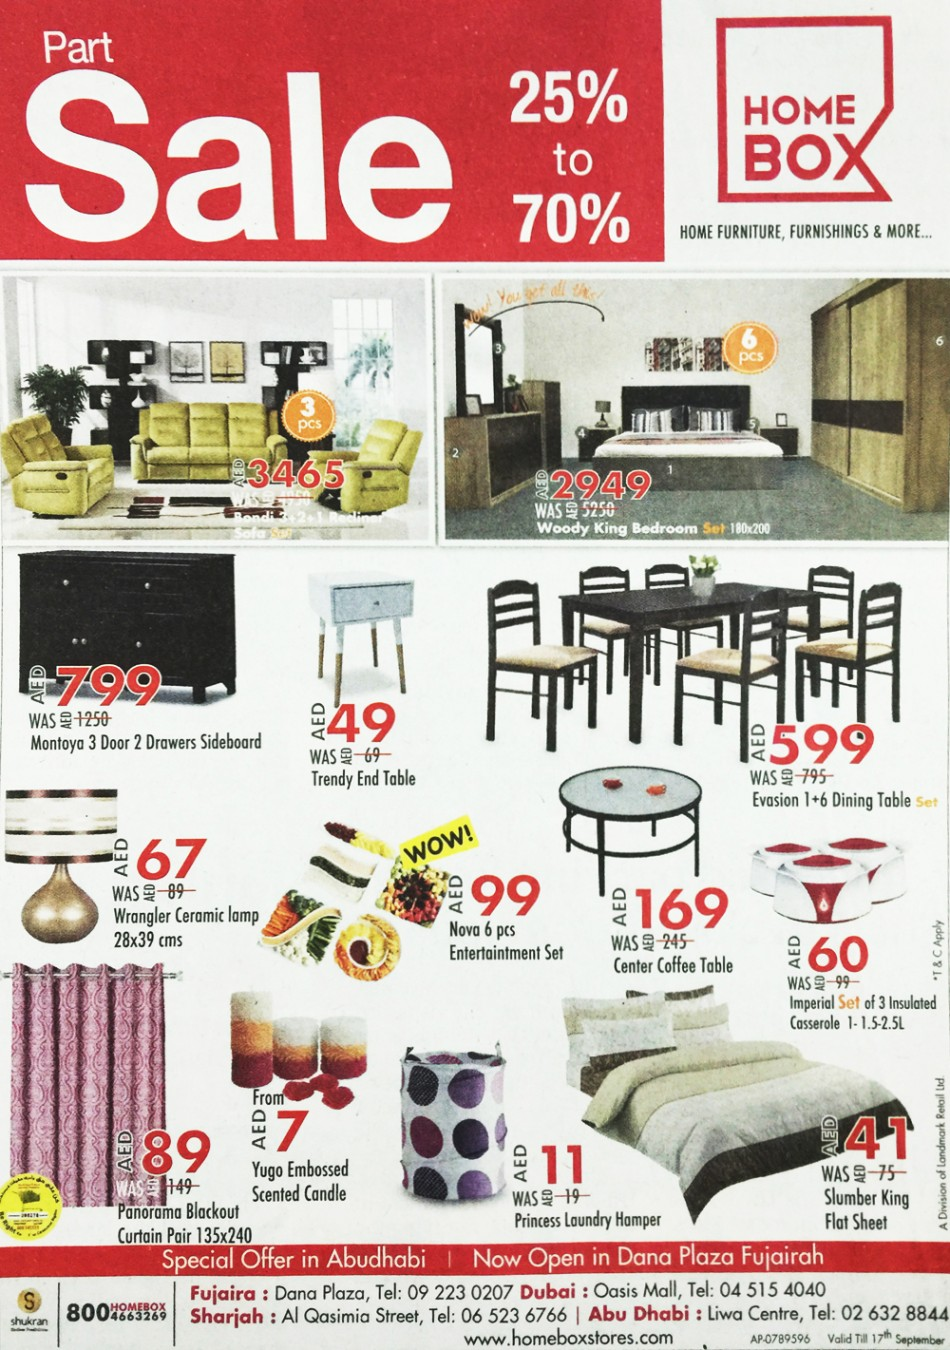 home box part sale 25 up to 70 discount sales special offers and deals. Black Bedroom Furniture Sets. Home Design Ideas